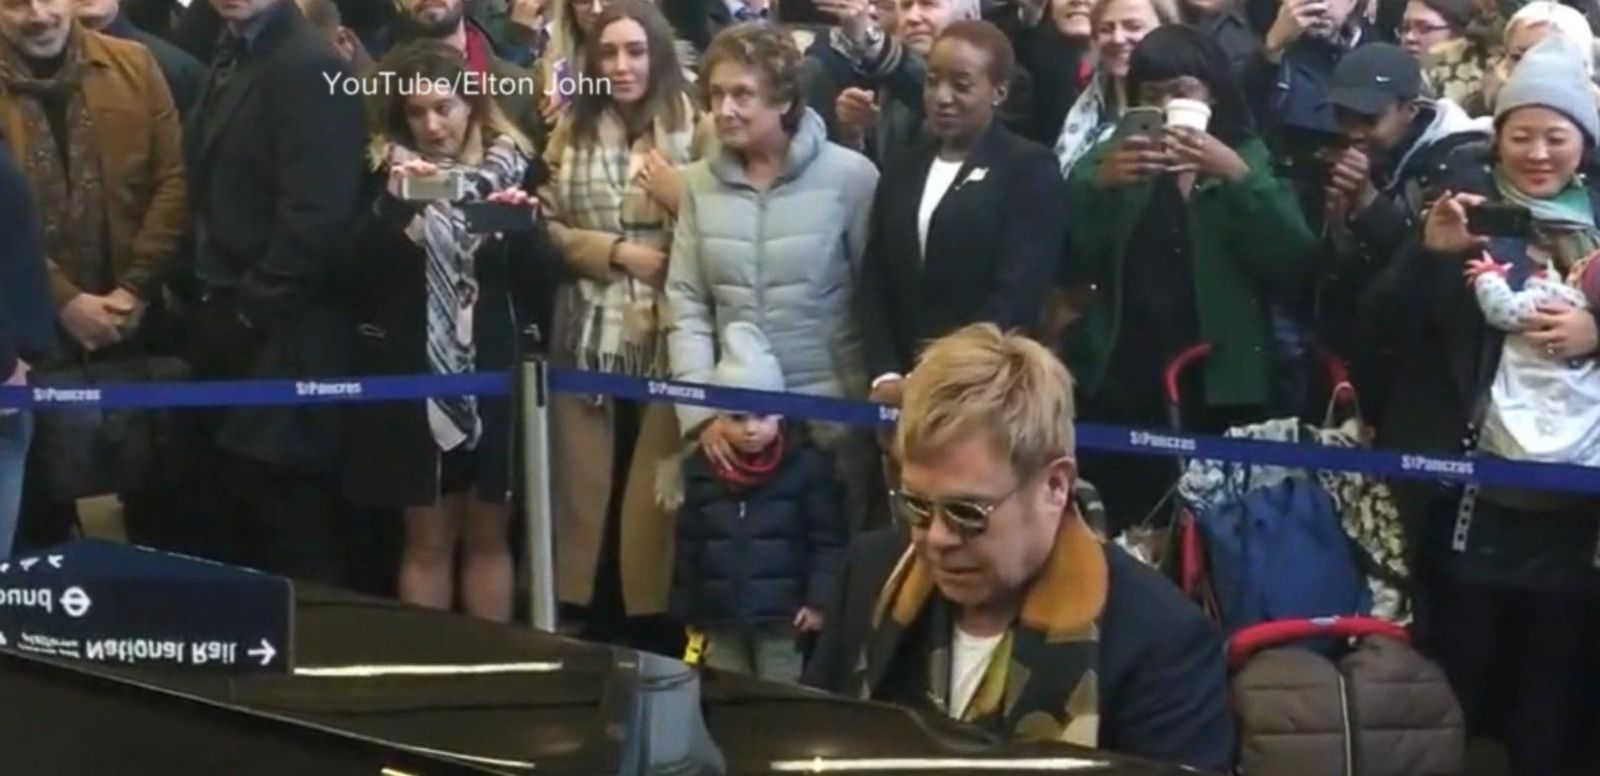 VIDEO: Sir Elton John's Special Gift to Commuters in London